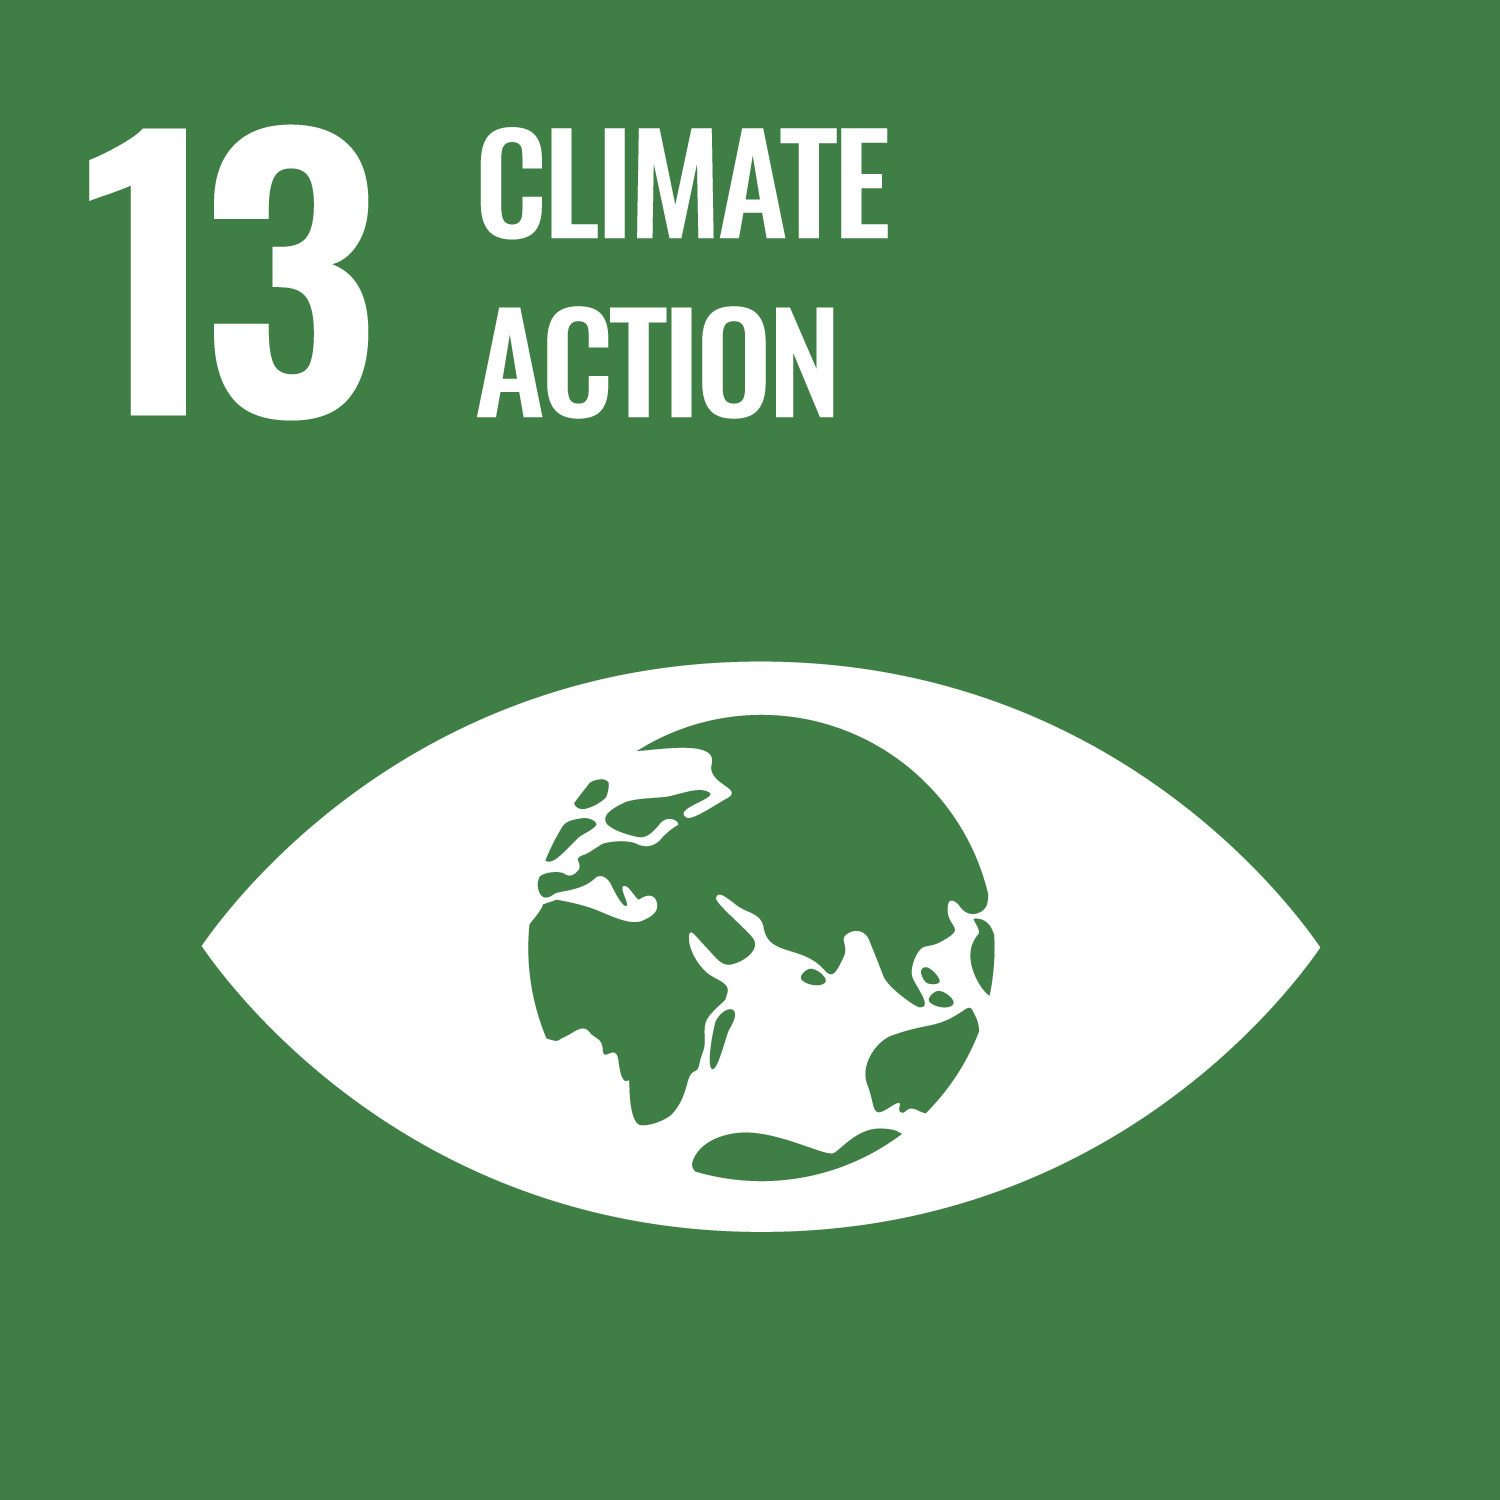 Climate Action Image